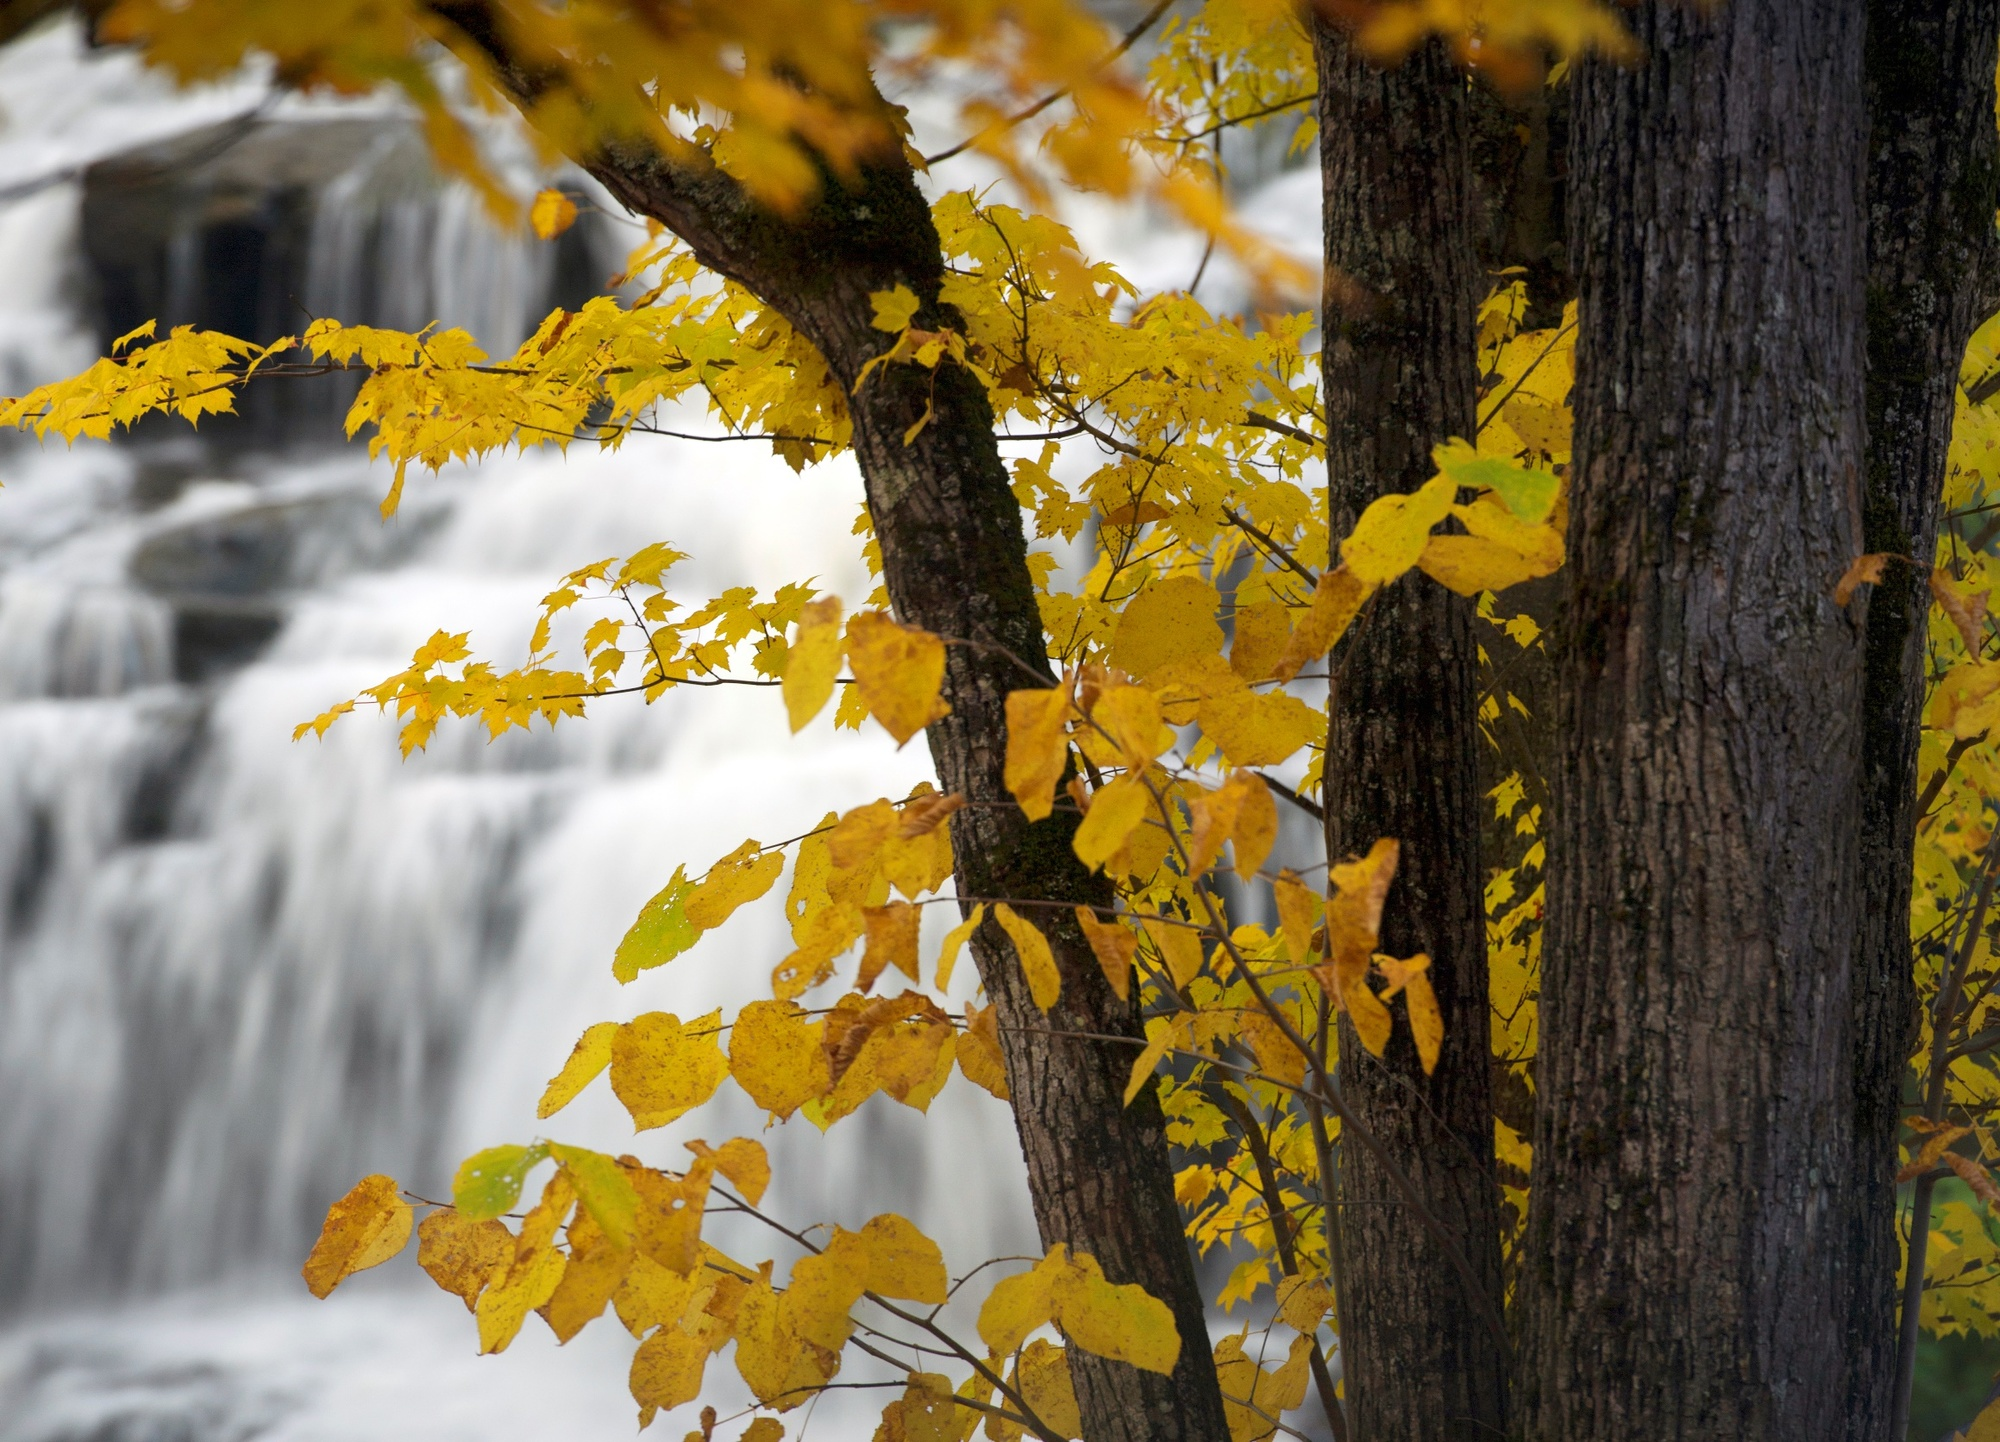 Bond Falls is among the popular destinations in the western Upper Peninsula throughout the year, autumn is no exception.